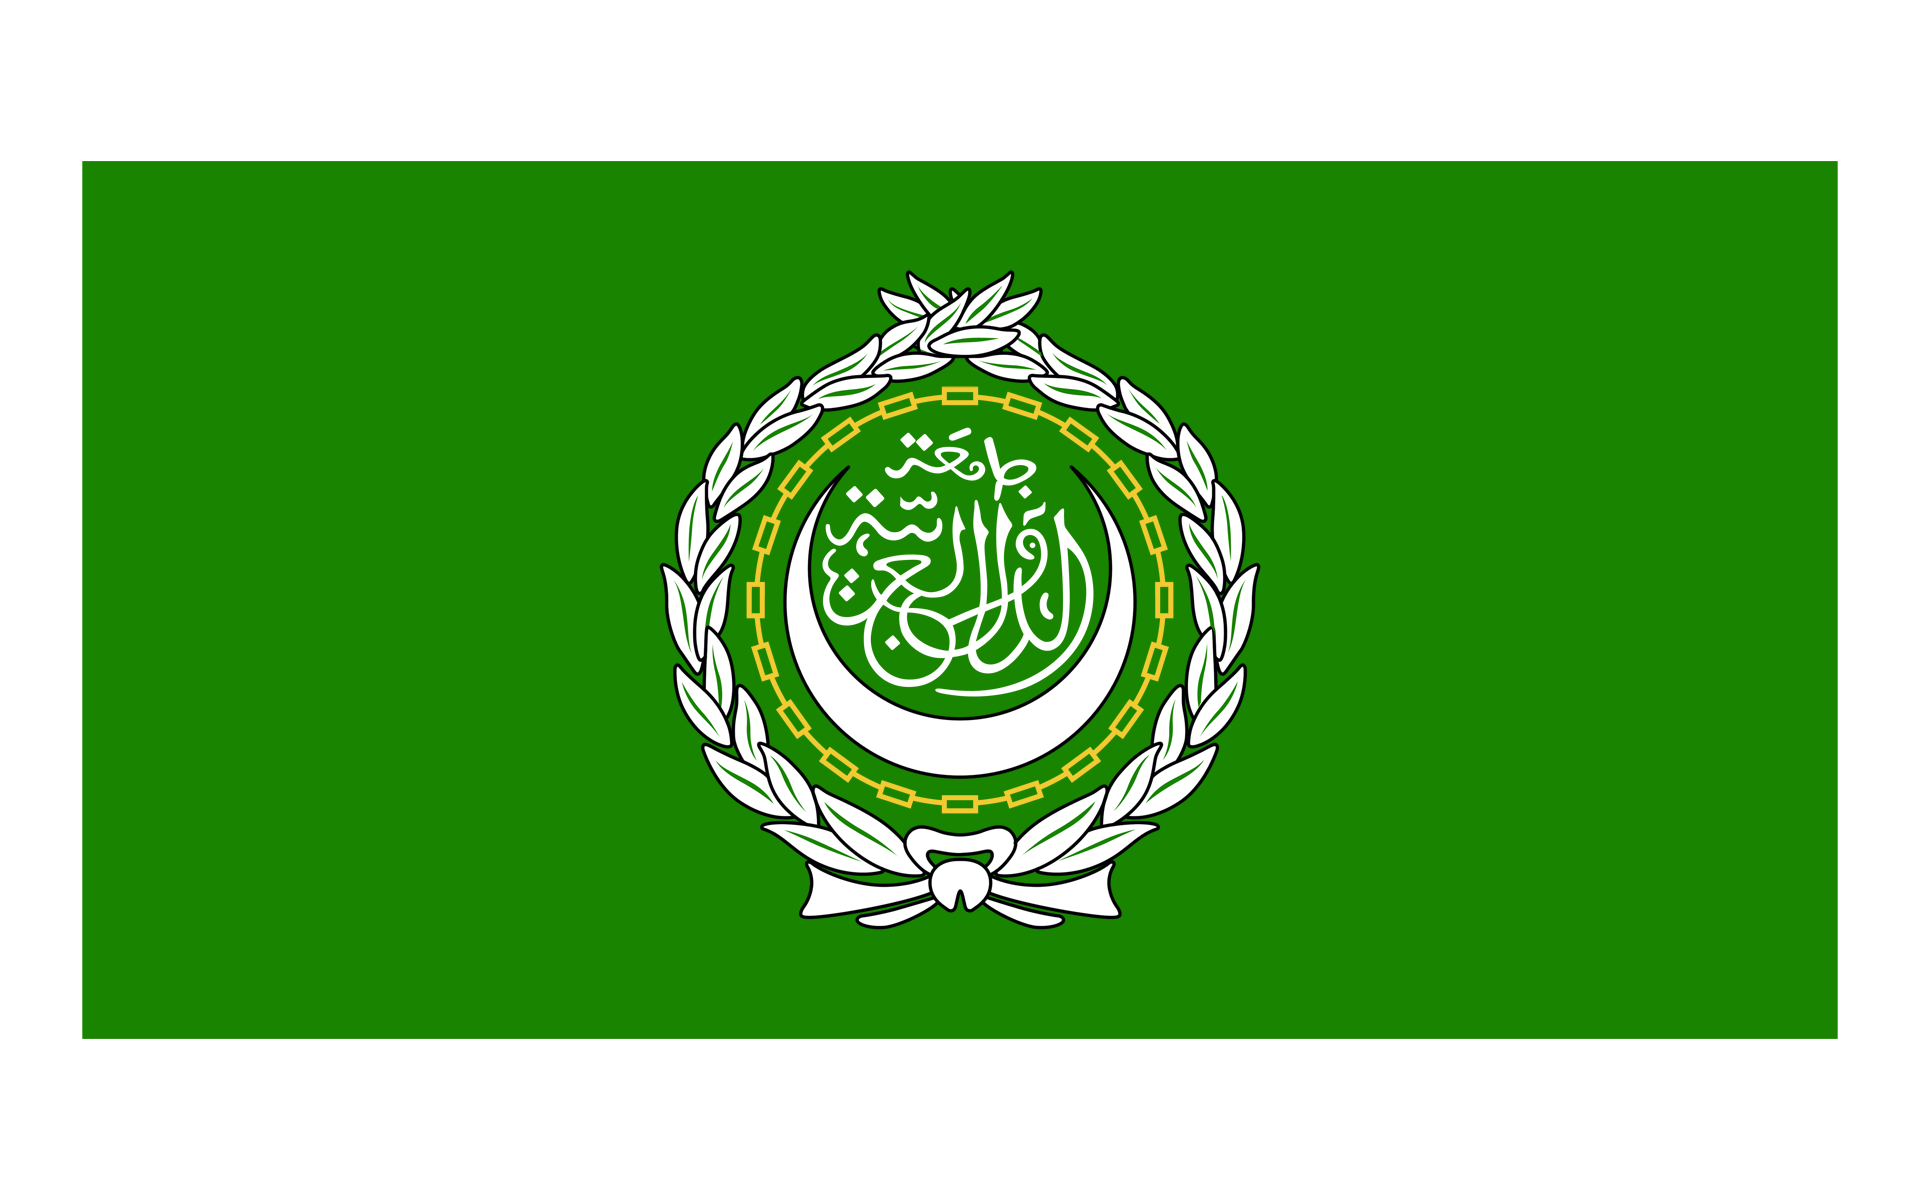 Arab League Symbols